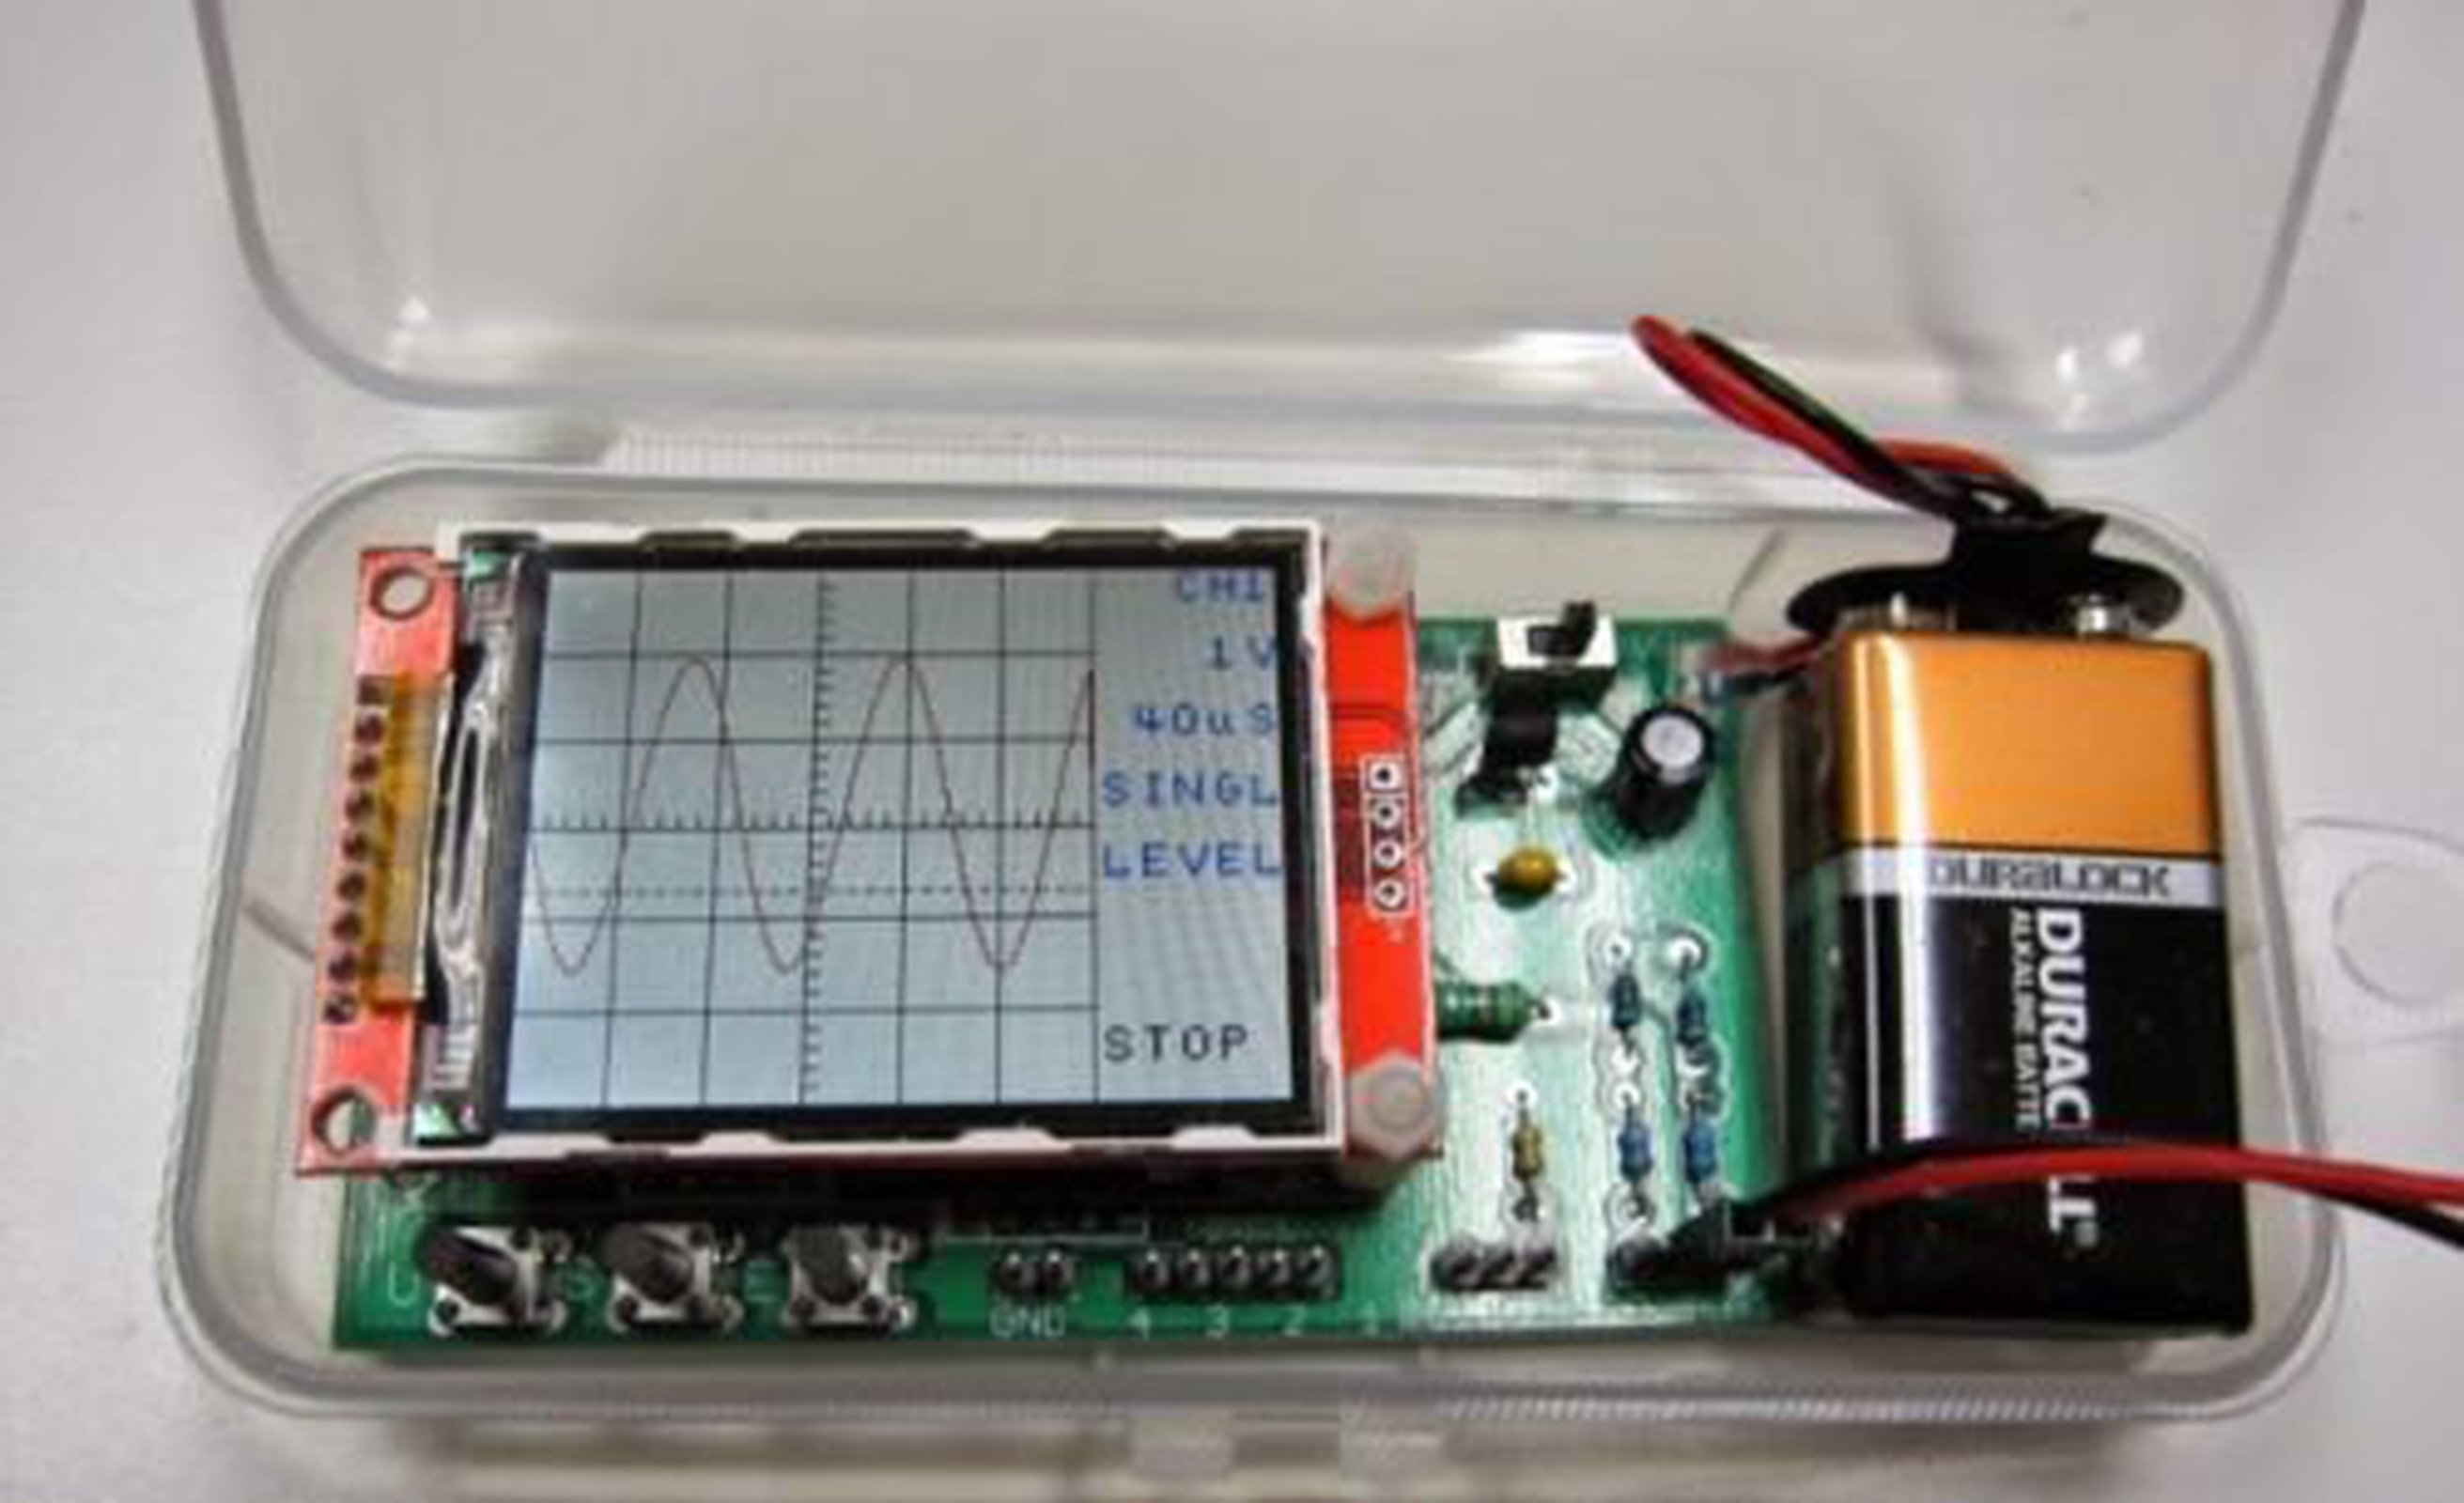 Diy digital oscilloscope logic analyzer from jack on tindie diy digital oscilloscope logic analyzer 1 solutioingenieria Image collections